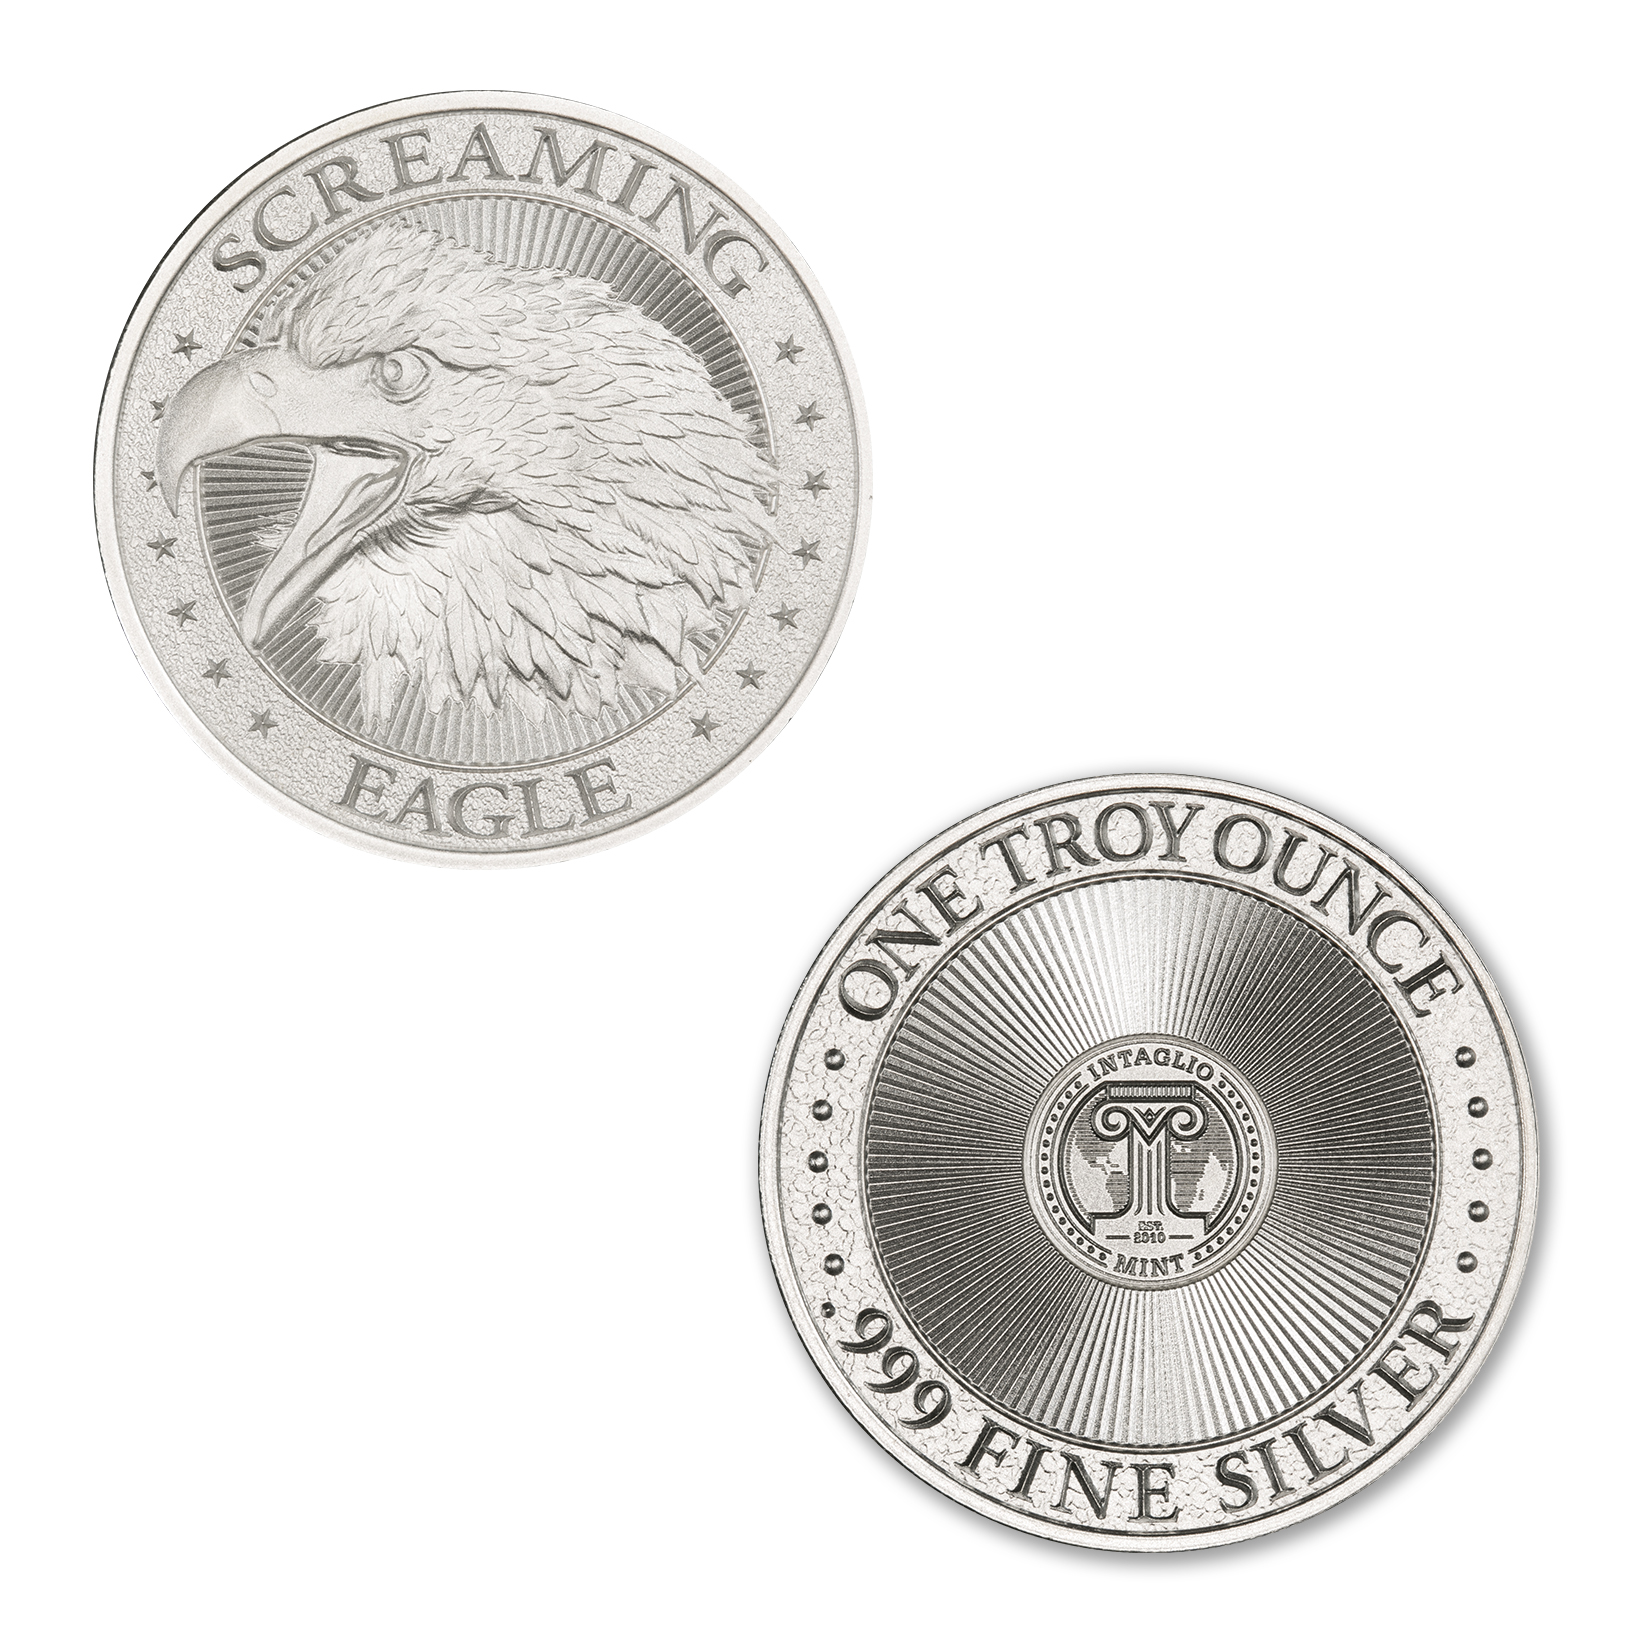 SCREAMING EAGLE – HIGH RELIEF – 1 TROY OUNCE – 39MM